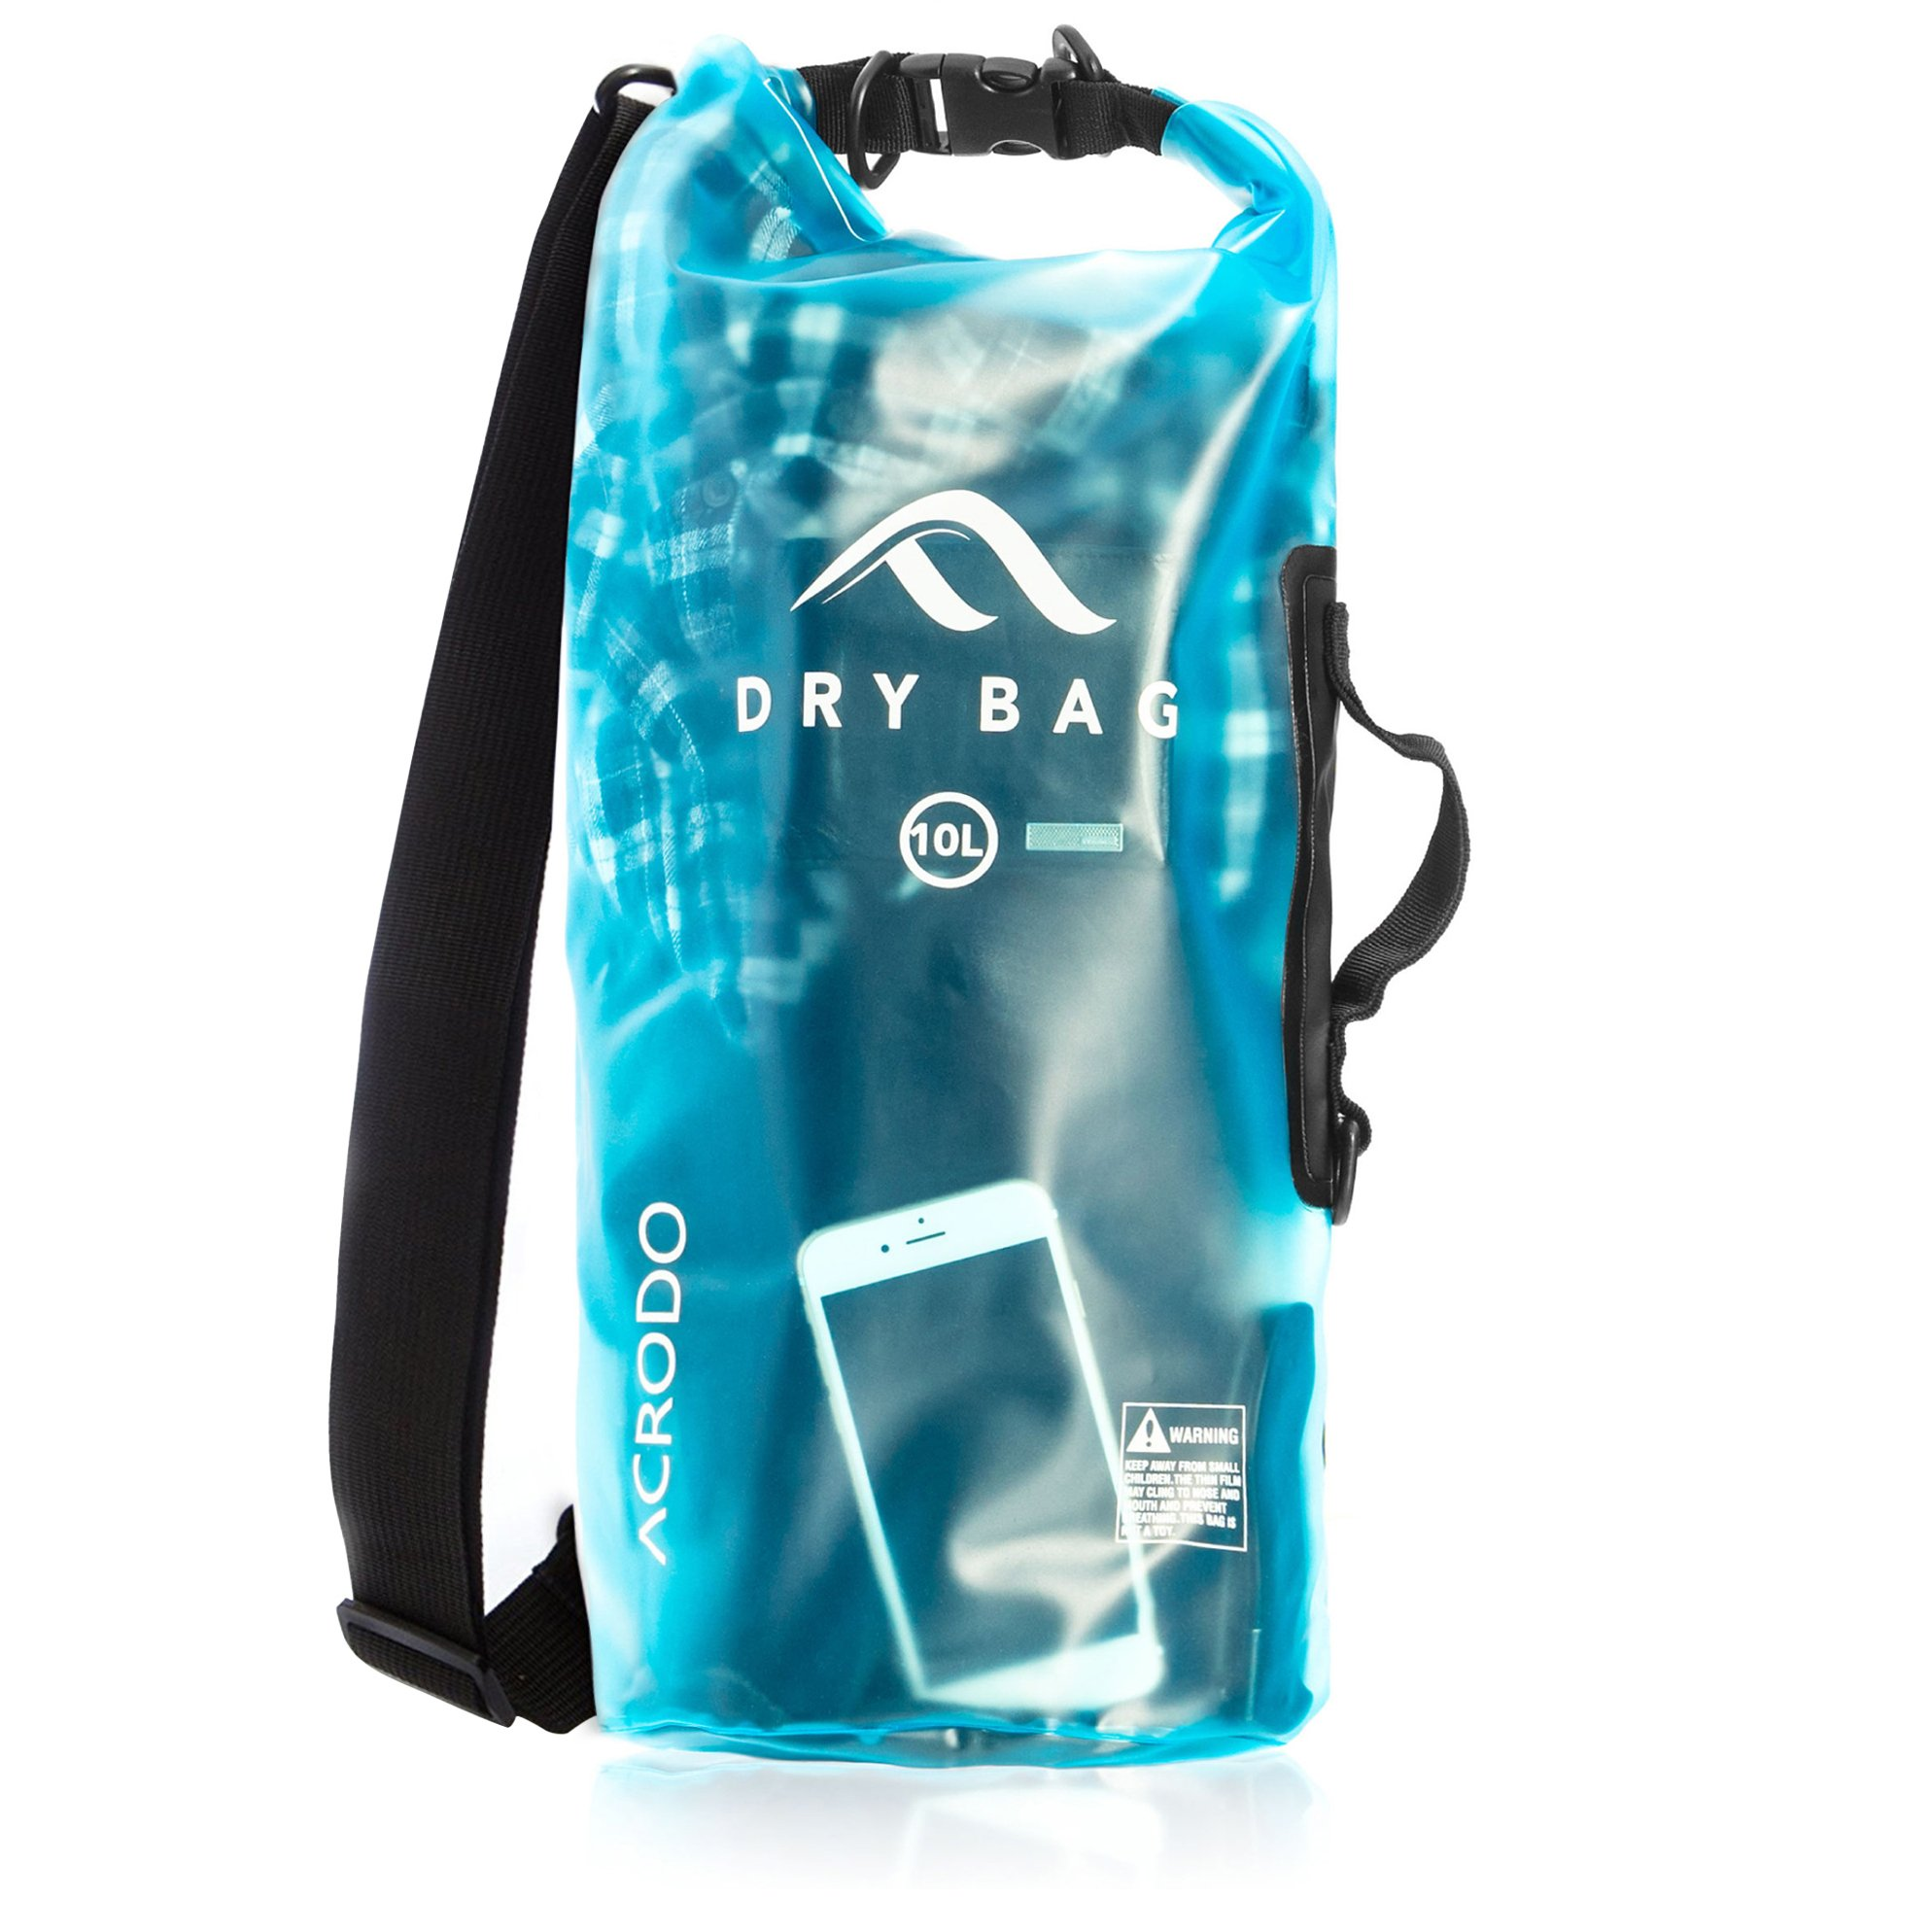 Acrodo New Waterproof Dry Bag Transparent Arctic Blue 10 Liter Floating for Boating, Camping, and Kayaking with Shoulder Strap - Keeps Clothing & Electronics Protected by Acrodo